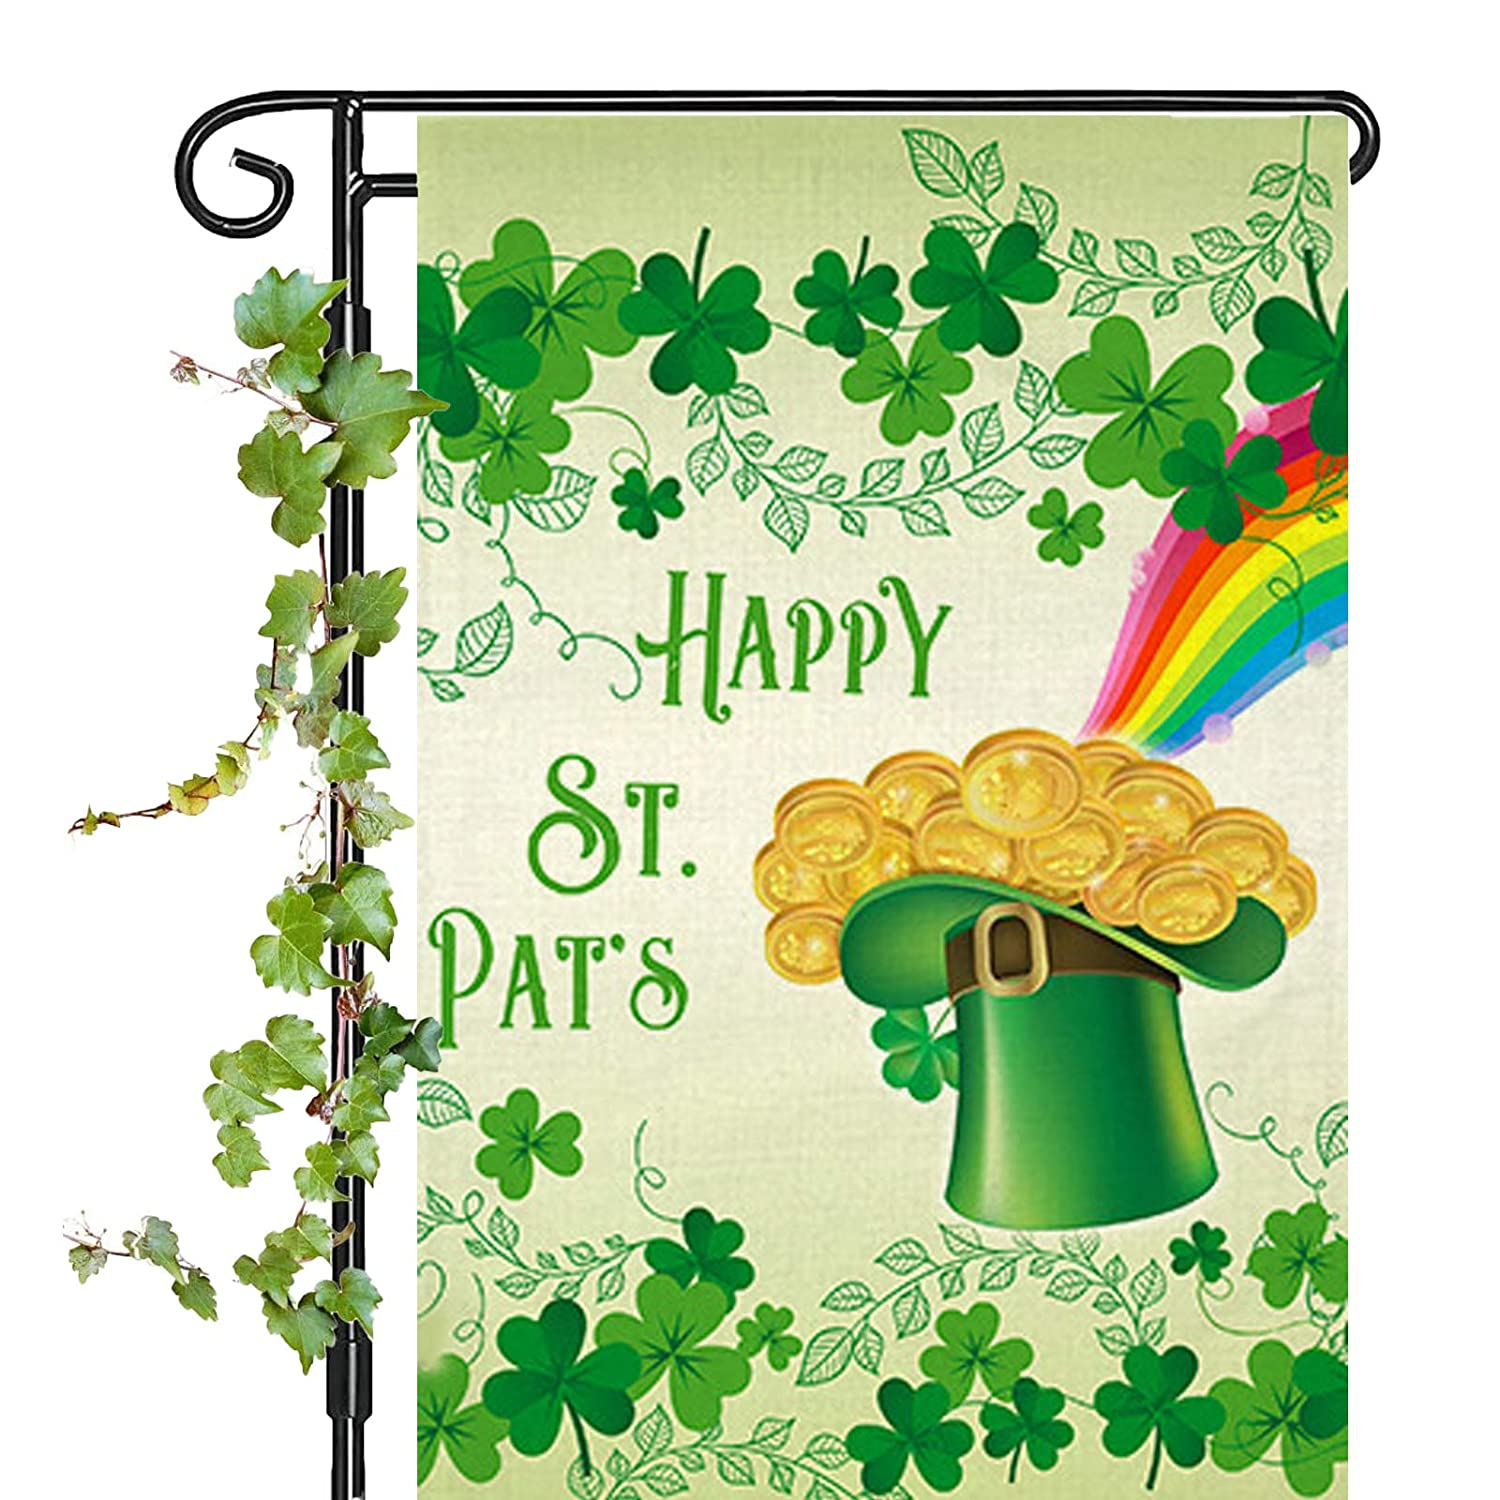 Happy St. Patrick's Day Garden Flag, Lucky Shamrocks St. Patrick's Day Garden Flag 12x18 Inch Double Sided Clover Decorative Flag for Outdoor Party